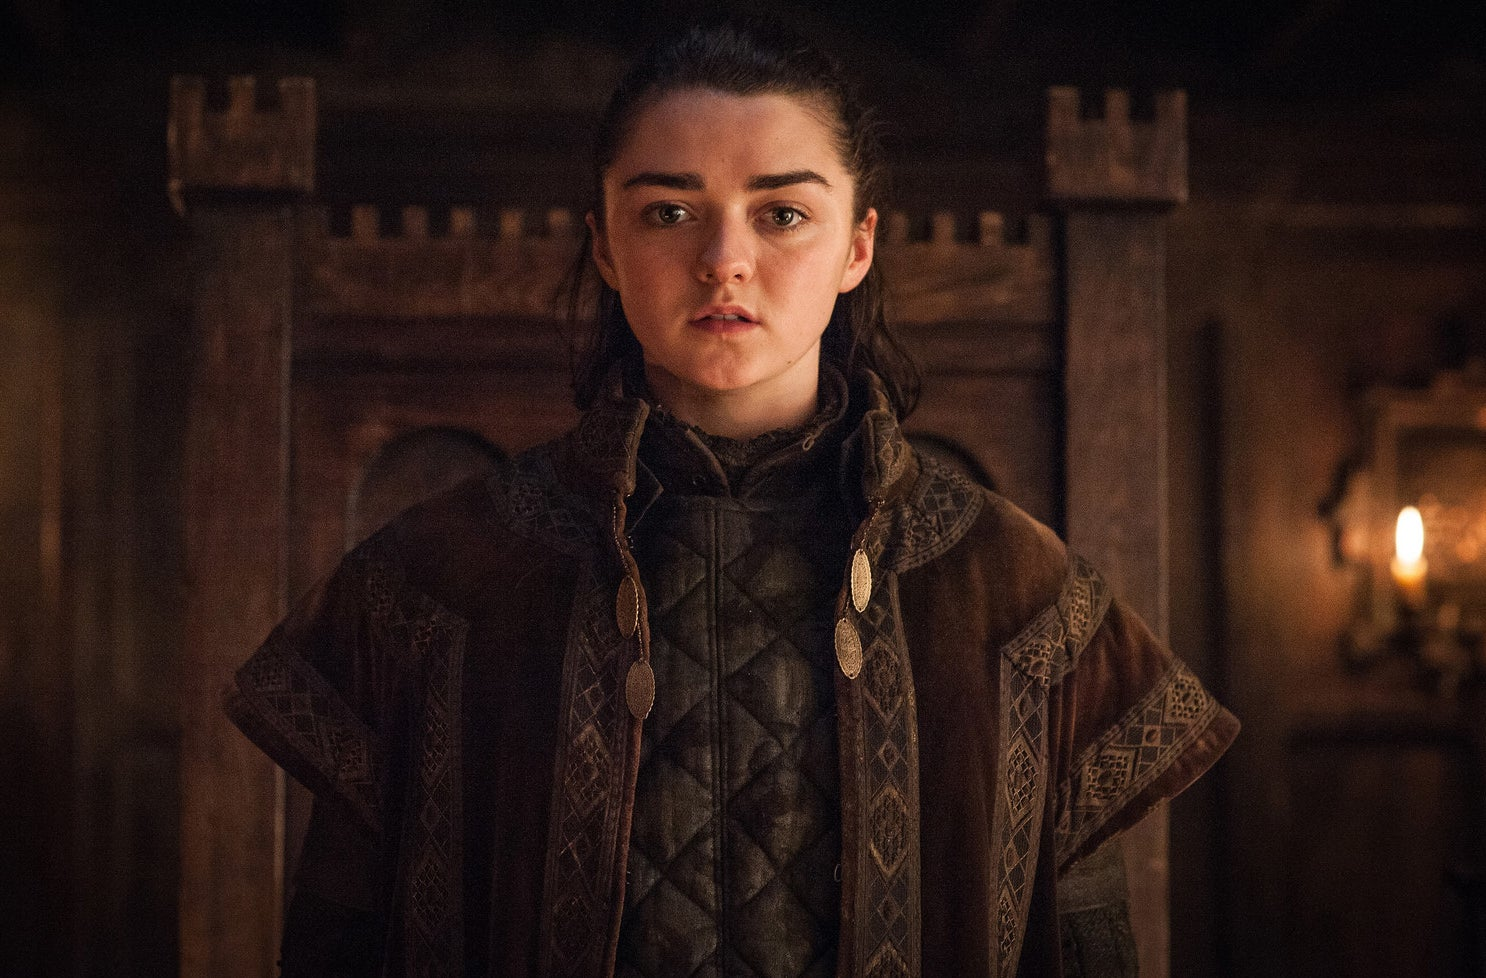 """Arya (As In Stark From """"Game Of Thrones"""") Has Become One Of The Most Popular Baby Names"""